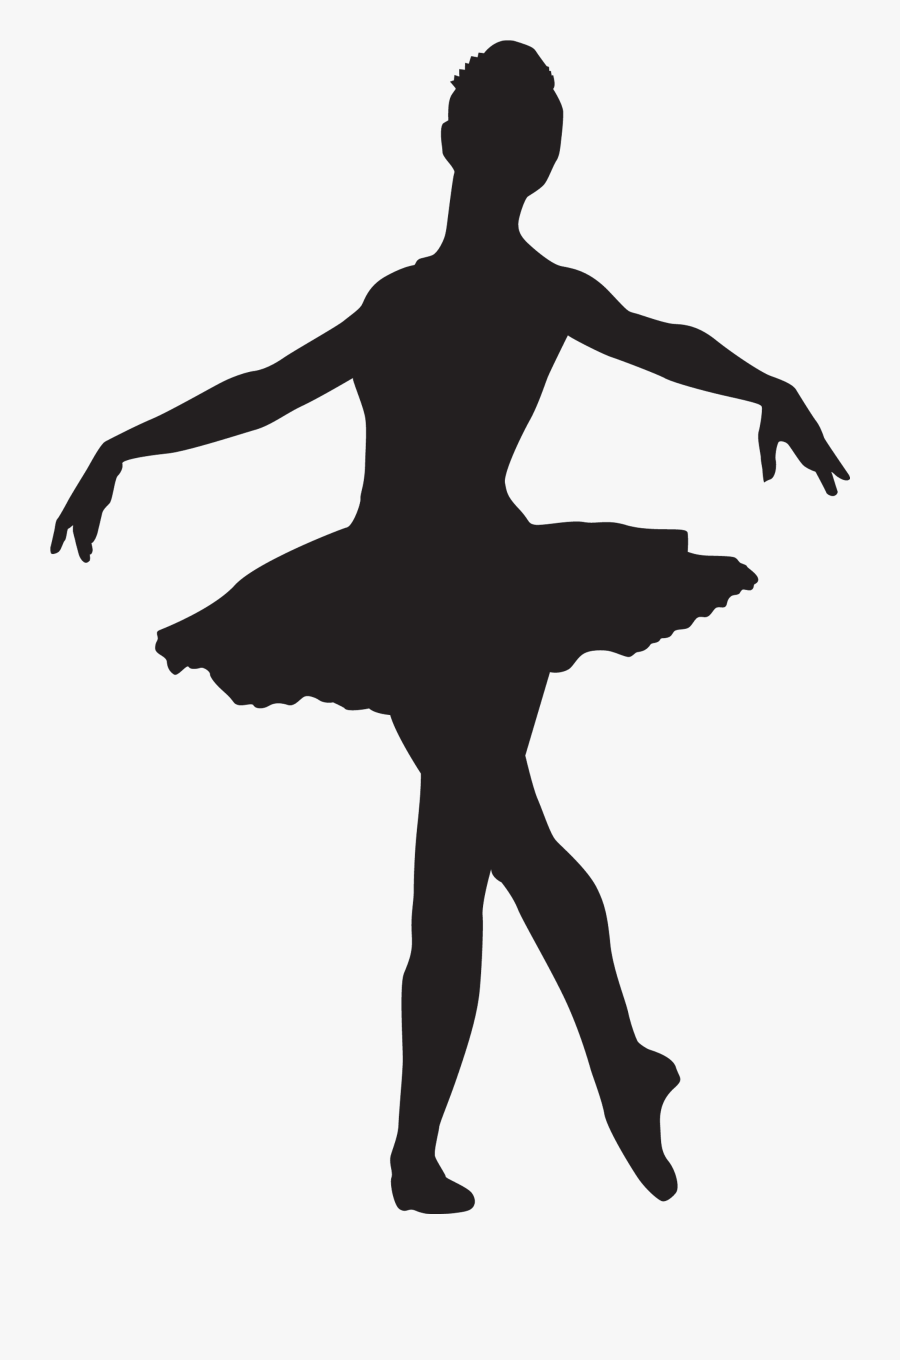 Ballet Dancer Silhouette Download Hq Png Clipart - Dancing Girl Silhouette Ballet, Transparent Clipart